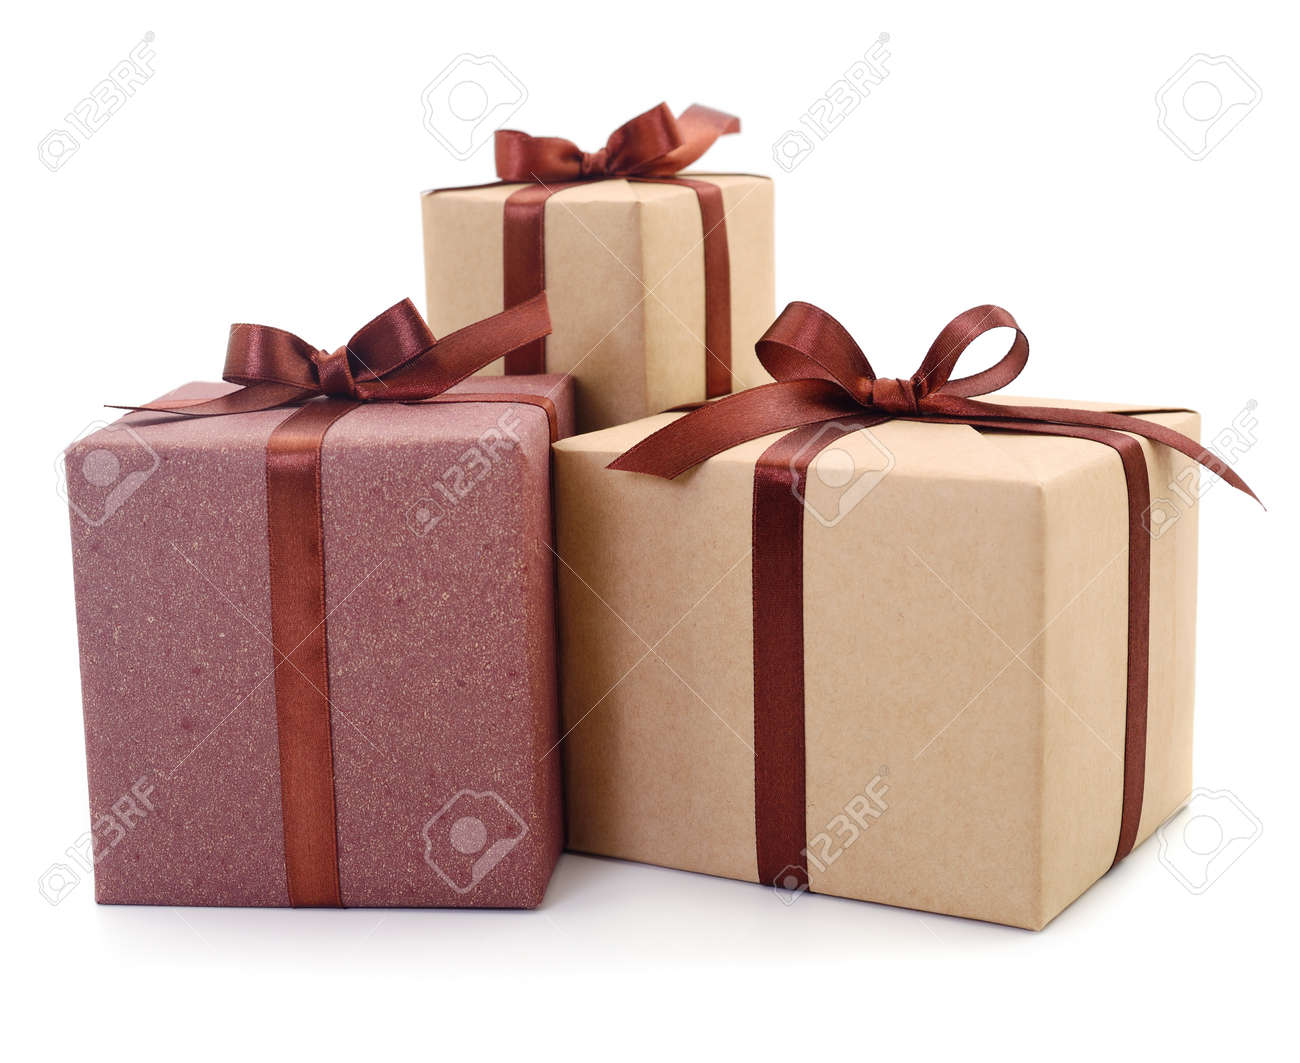 Gift boxes, gifts on a white background isolated. Vacation. Valentine's Day. Women's Day. mothers Day. - 120672065